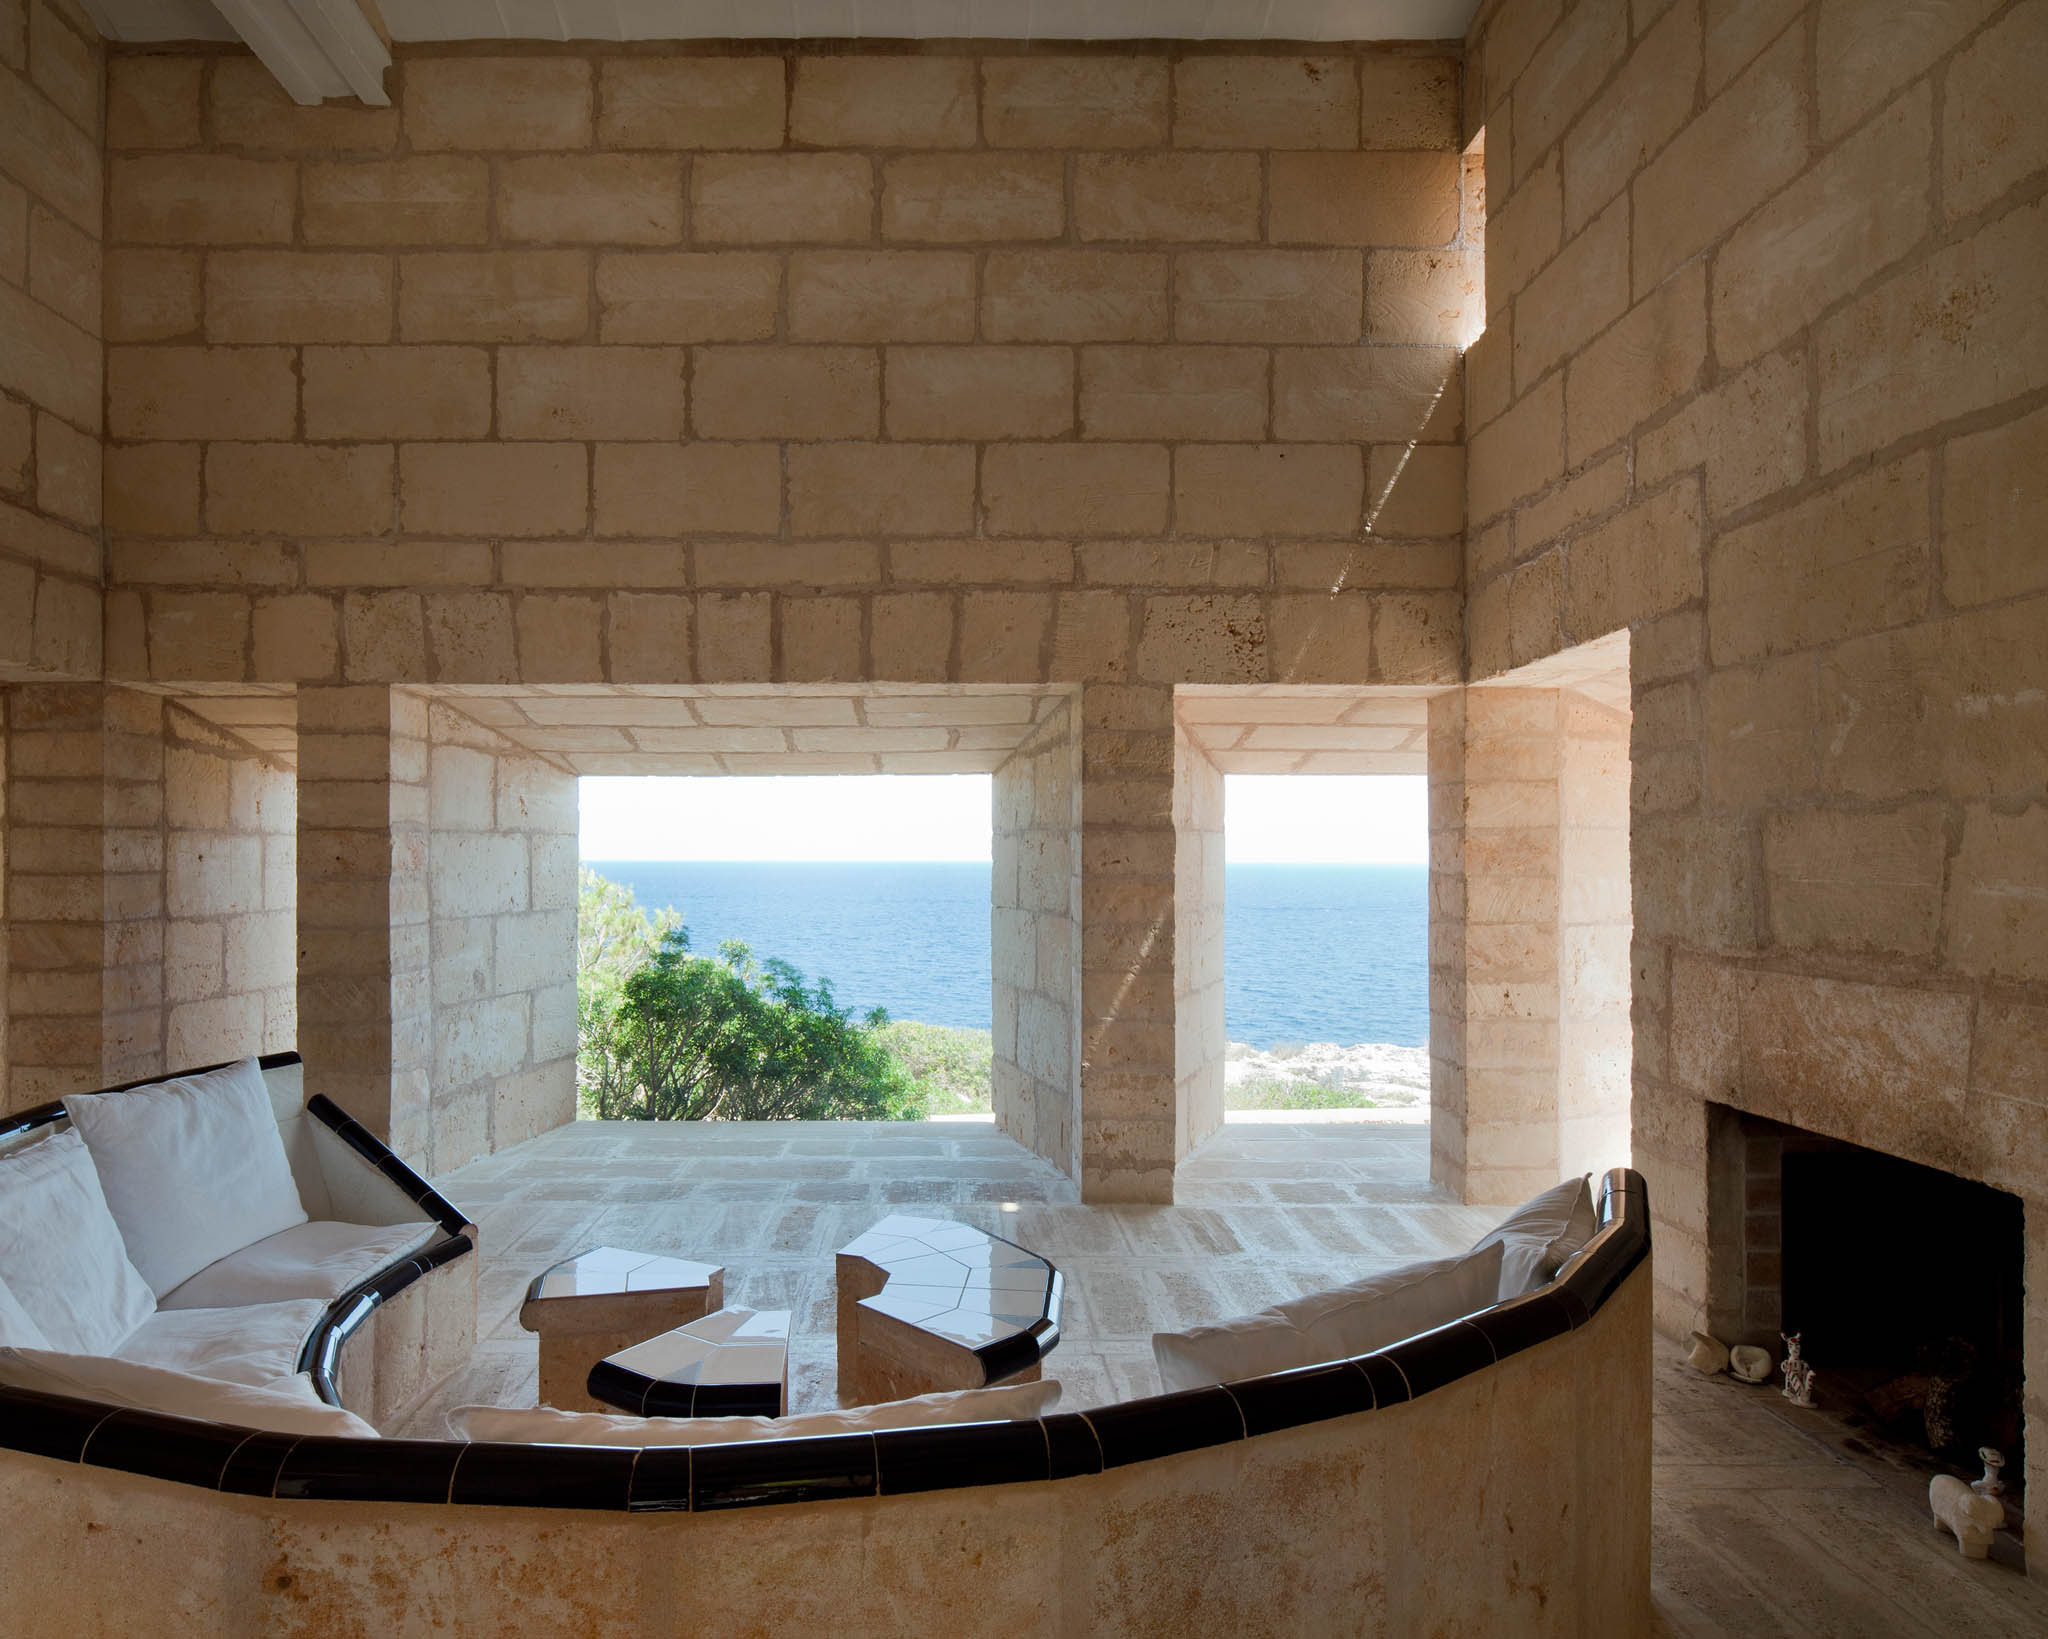 Can Lis, Mallorca. Architect: Jorn Utzon